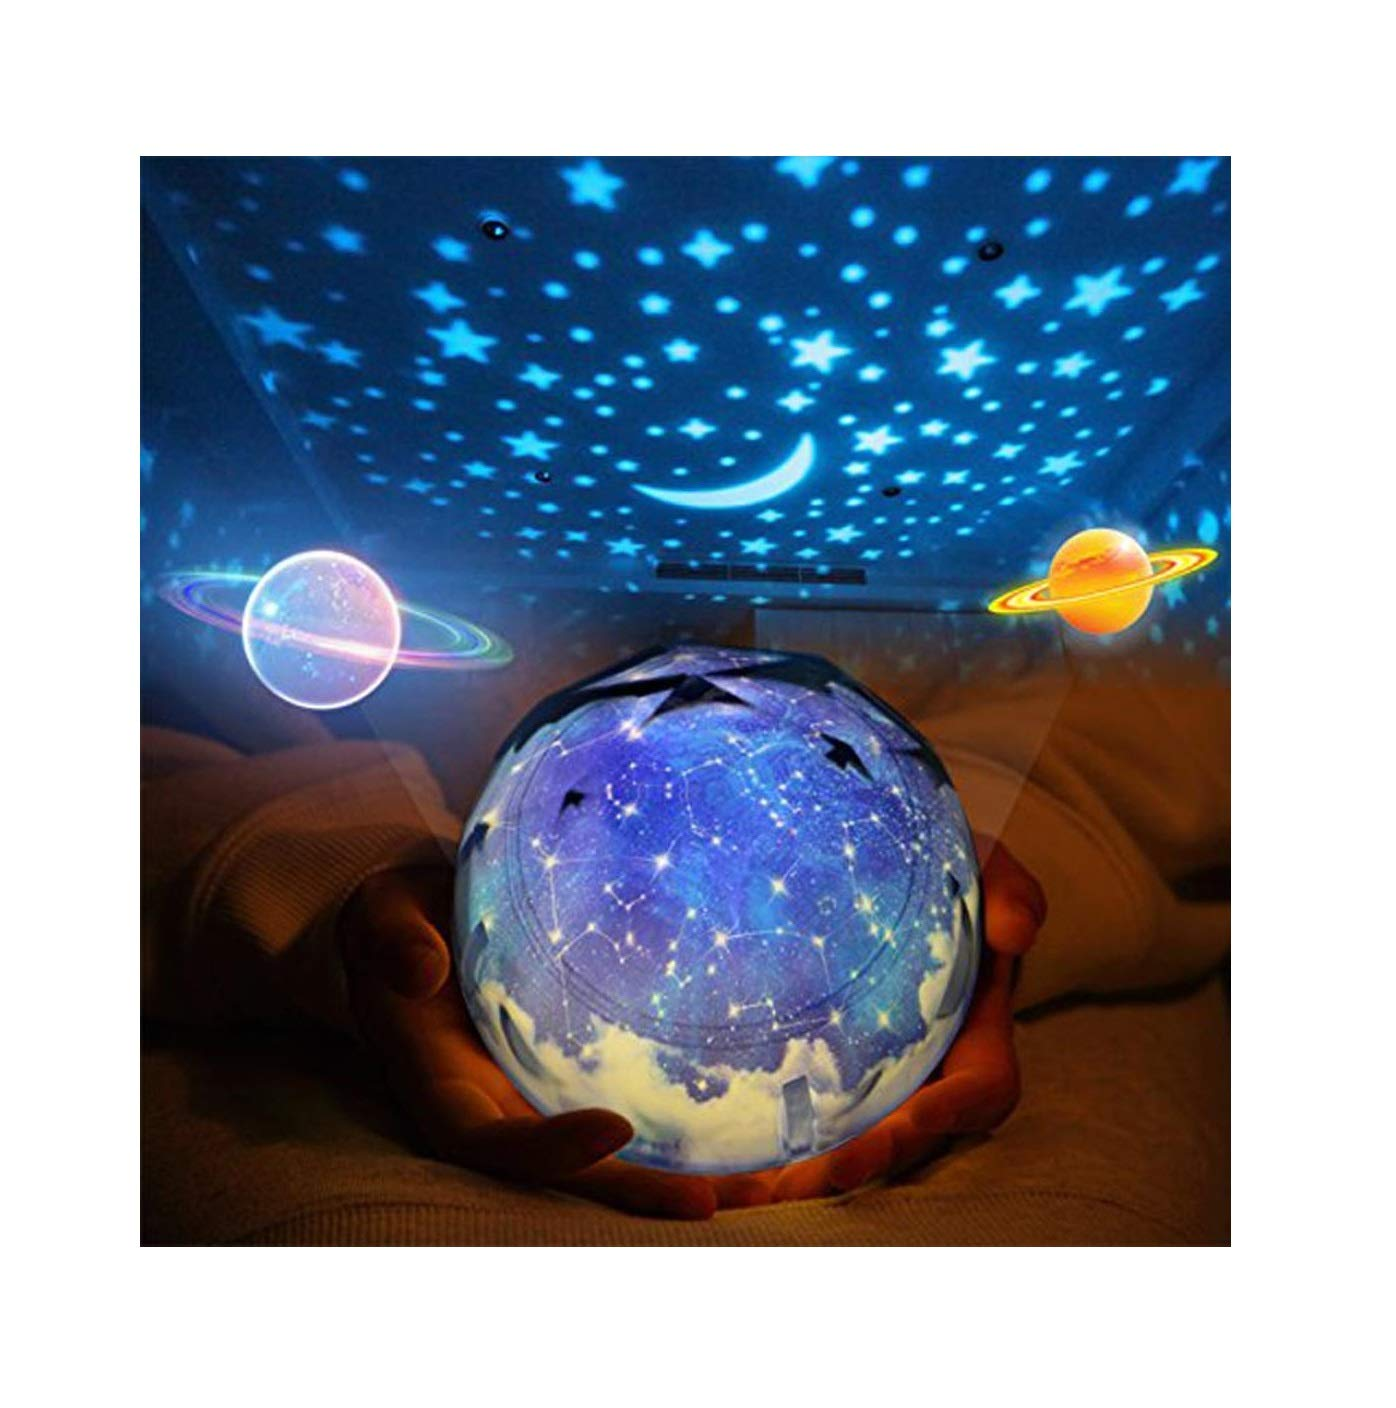 Sleep Soother Aurora Projection LED Night Light Lamp,Relaxing Light Show for Baby Kids and Adults, Mood Light for Baby Nursery Bedroom Living Room by Rambling